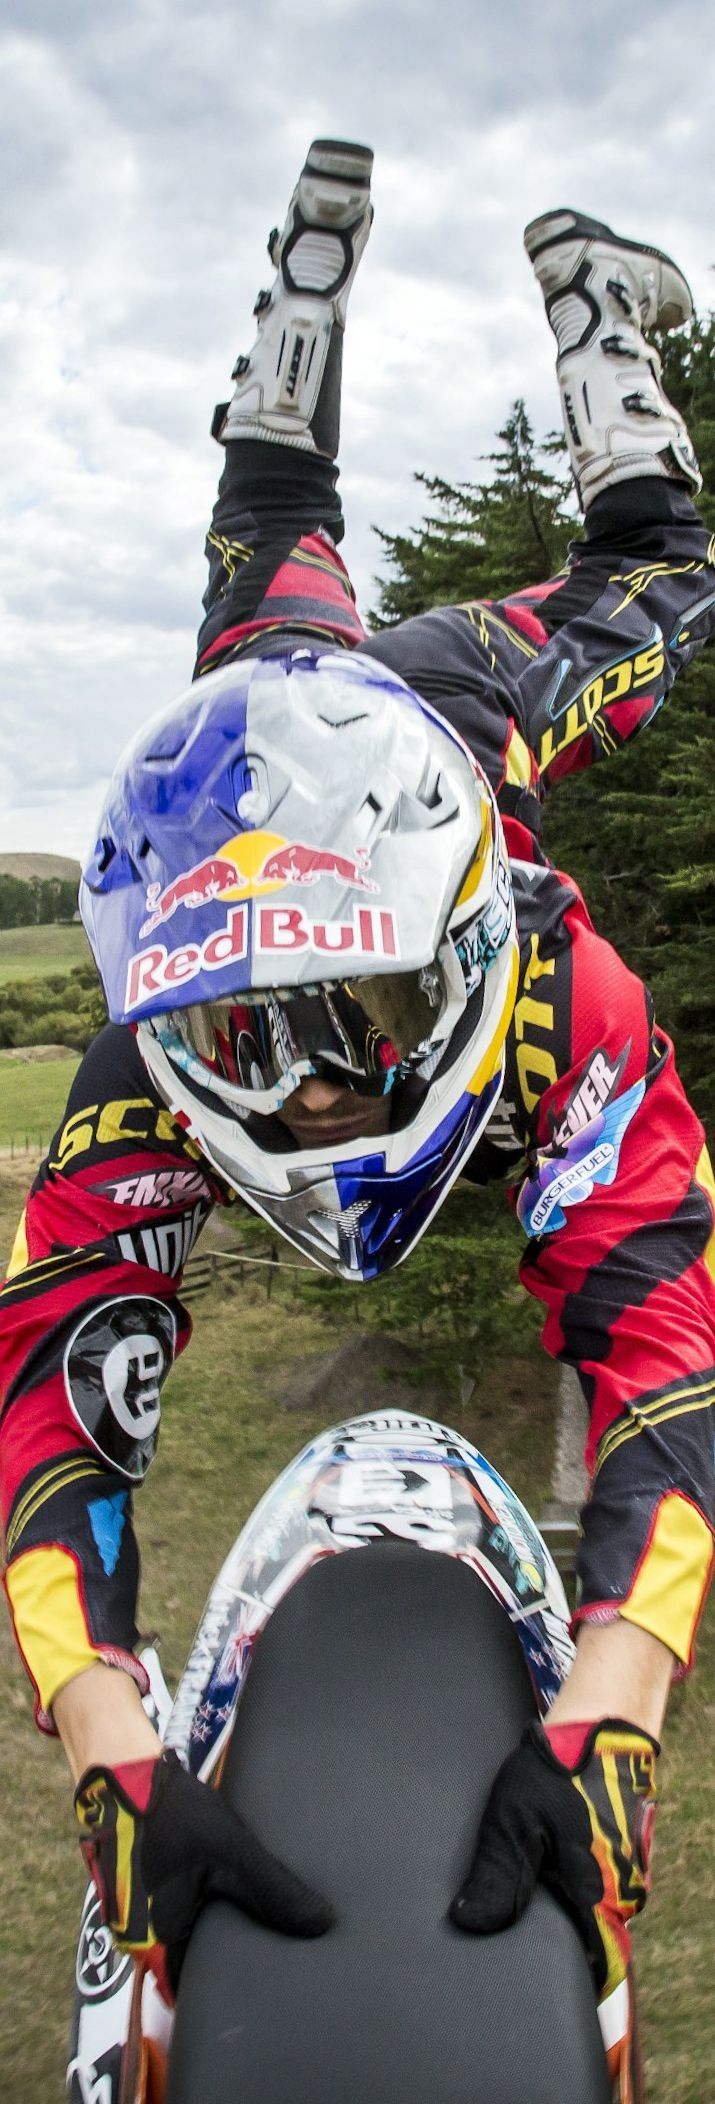 Hold on tight, it's only monday. #redbull #givesyouwings